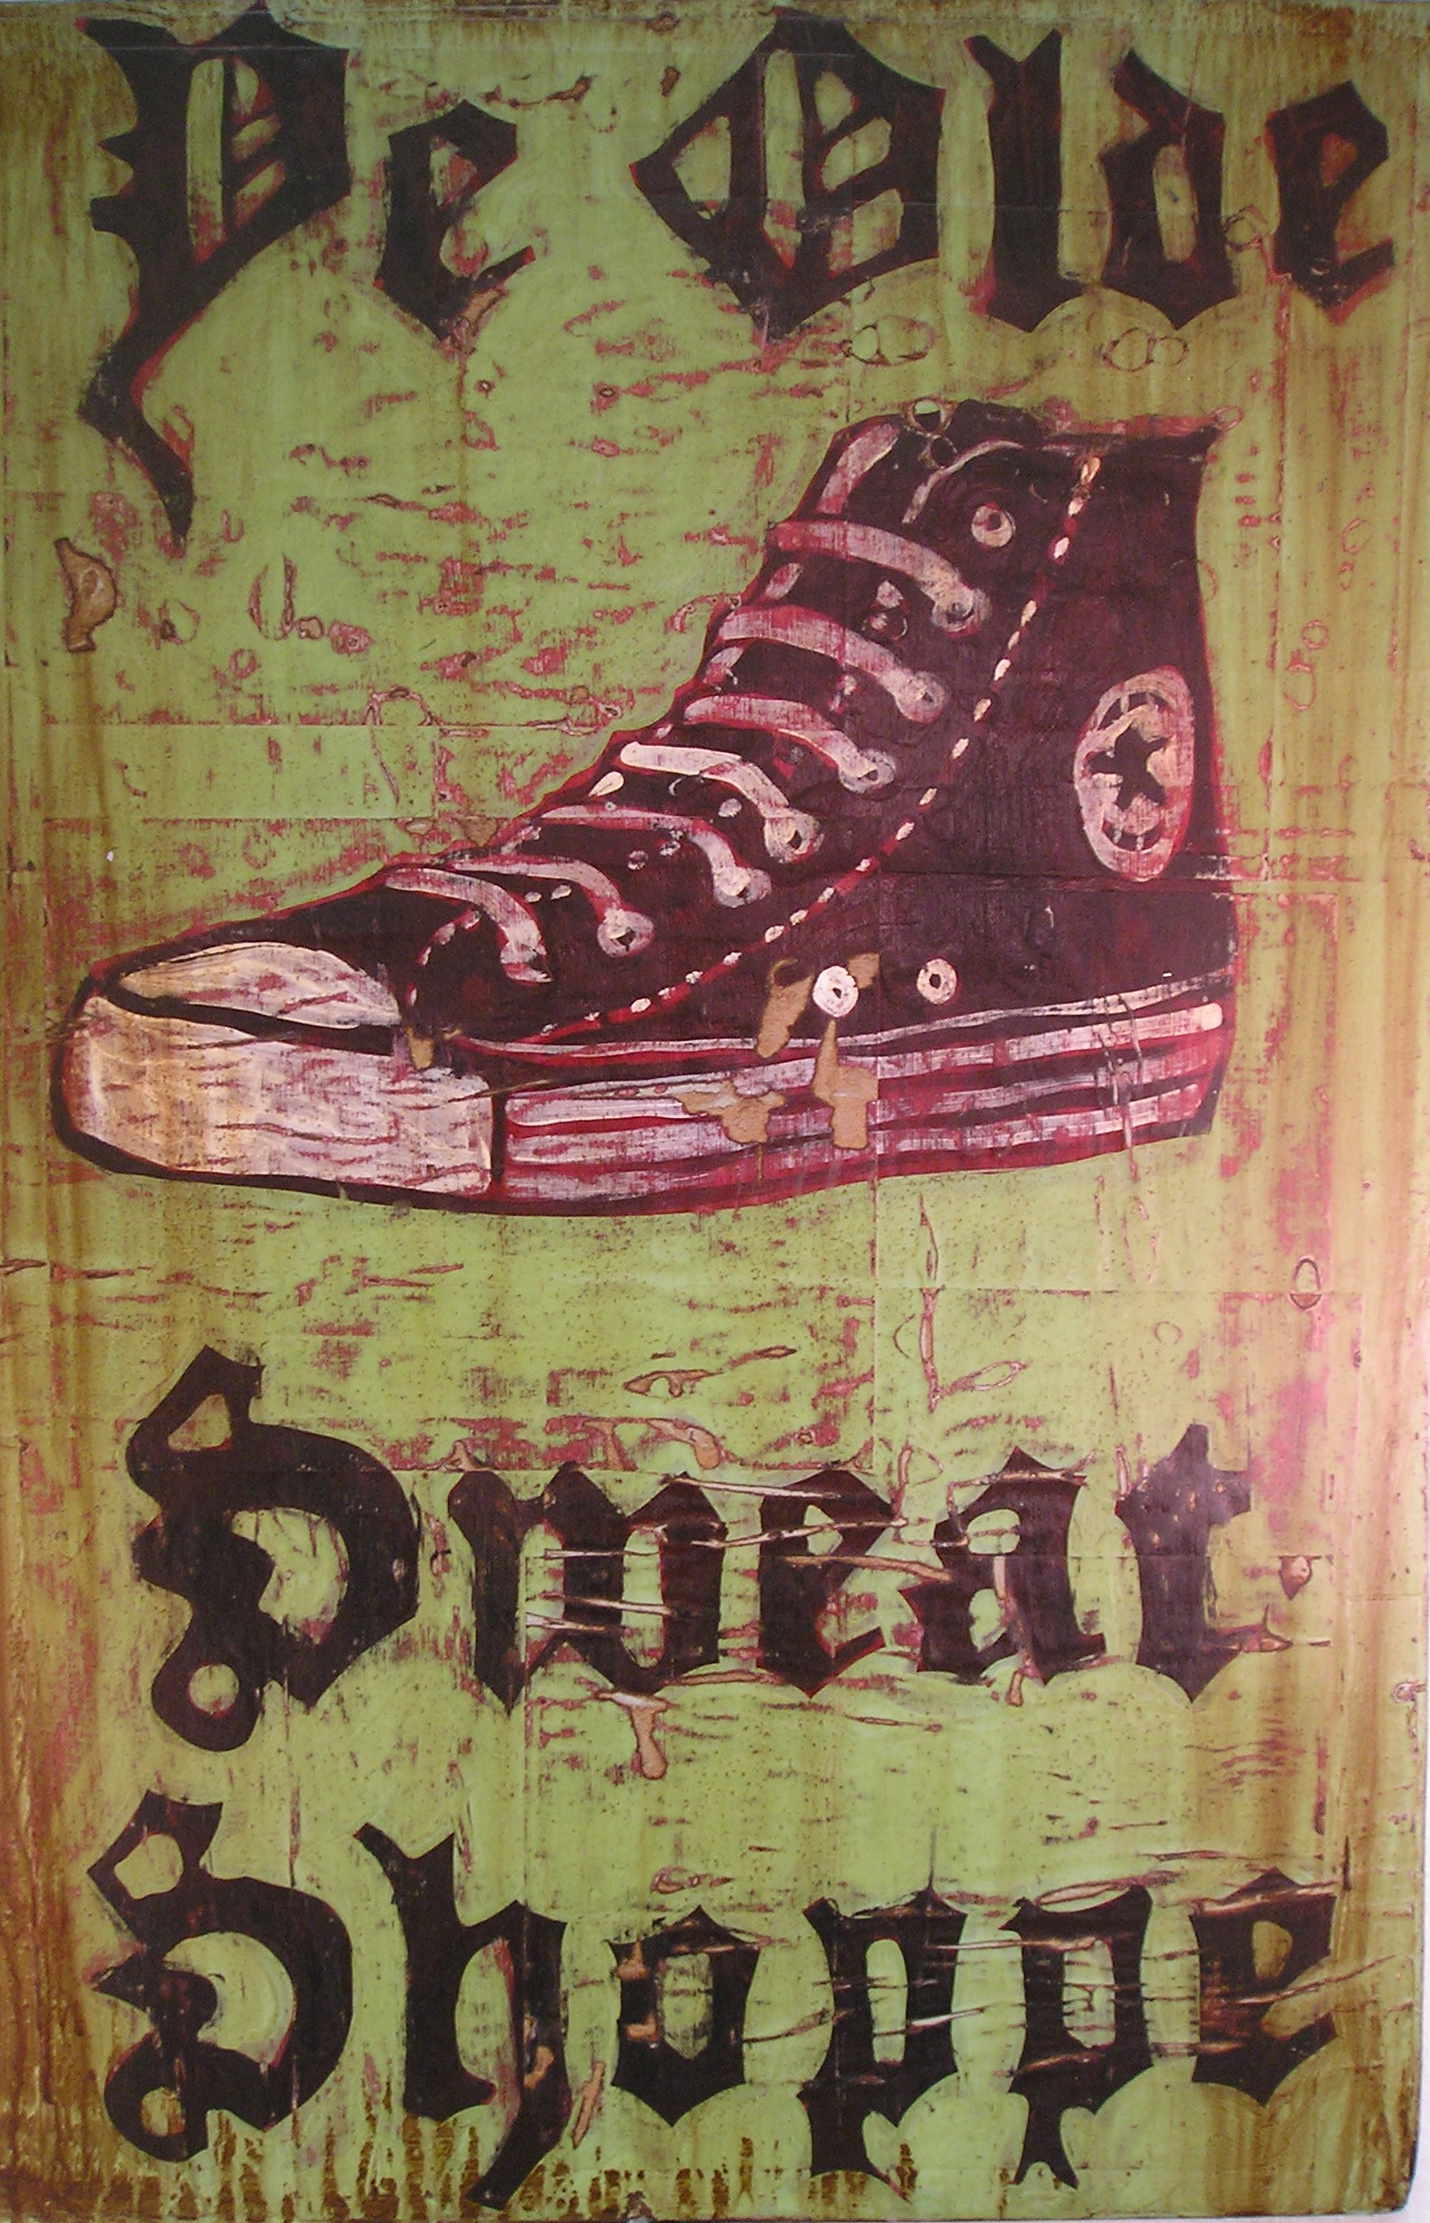 9. ye olde sweat shoppe, 2009,                          acrylic on paper on wood 30in x 20in.JPG